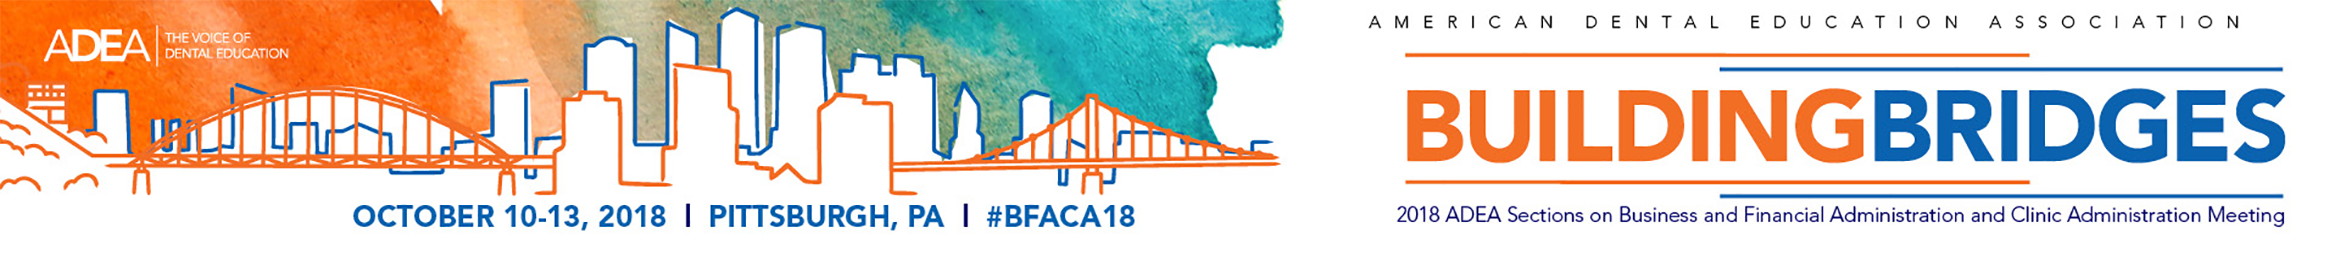 2018 ADEA BFACA Meeting Main banner